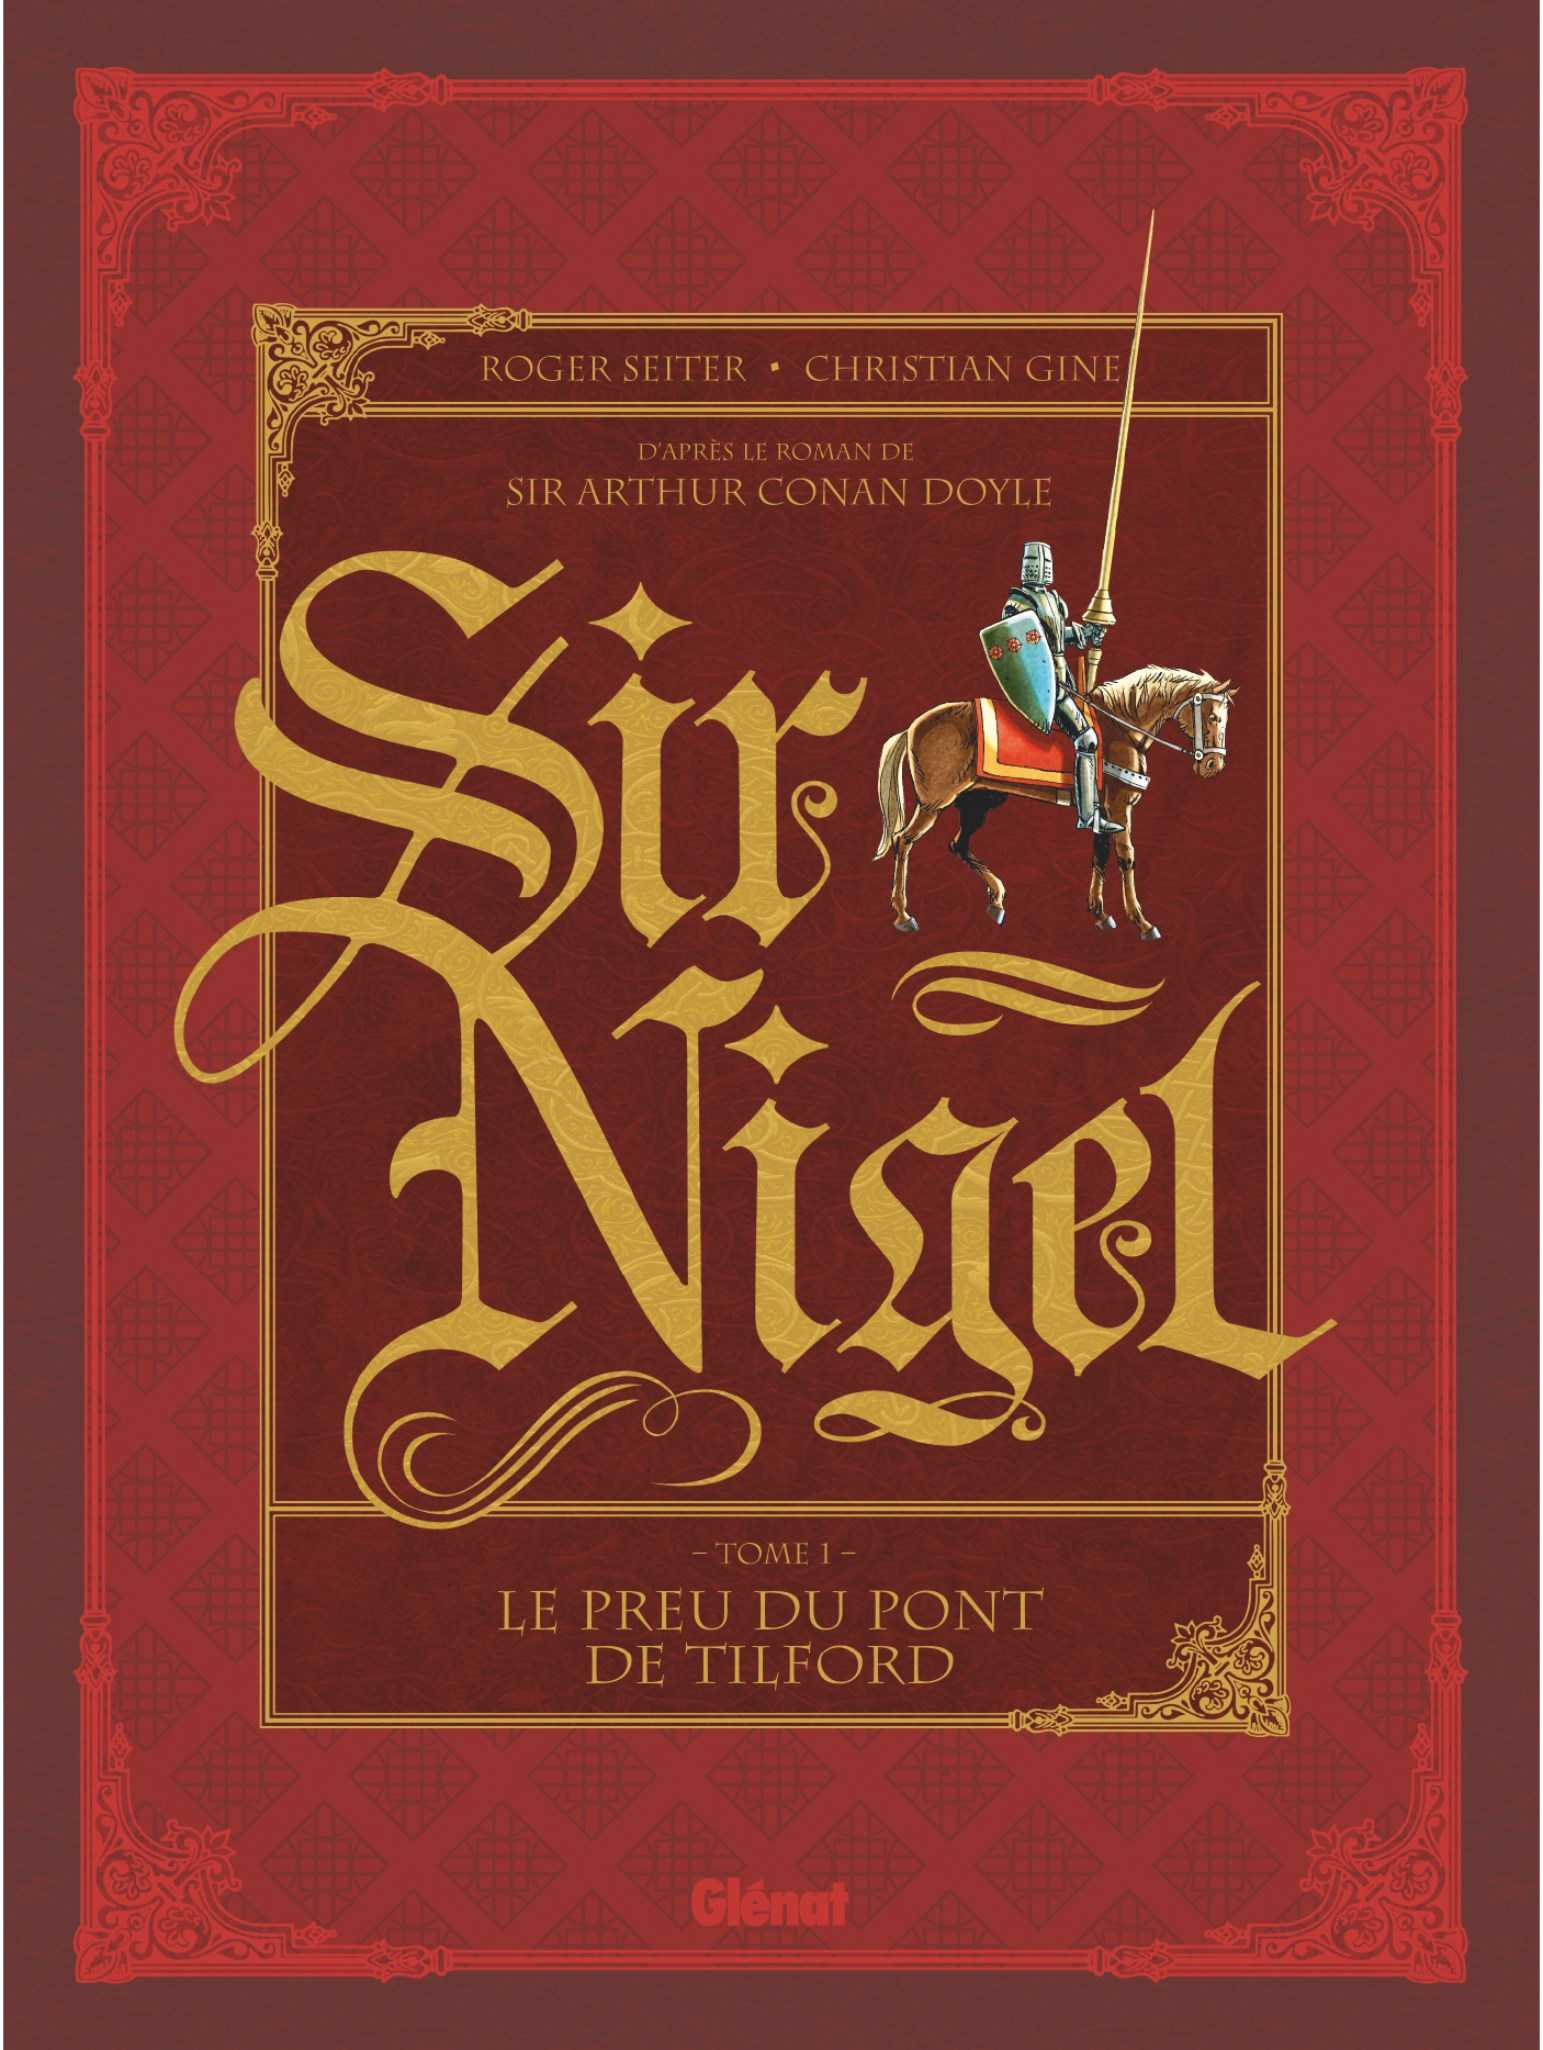 Sir Nigel, fresque épique et flamboyante